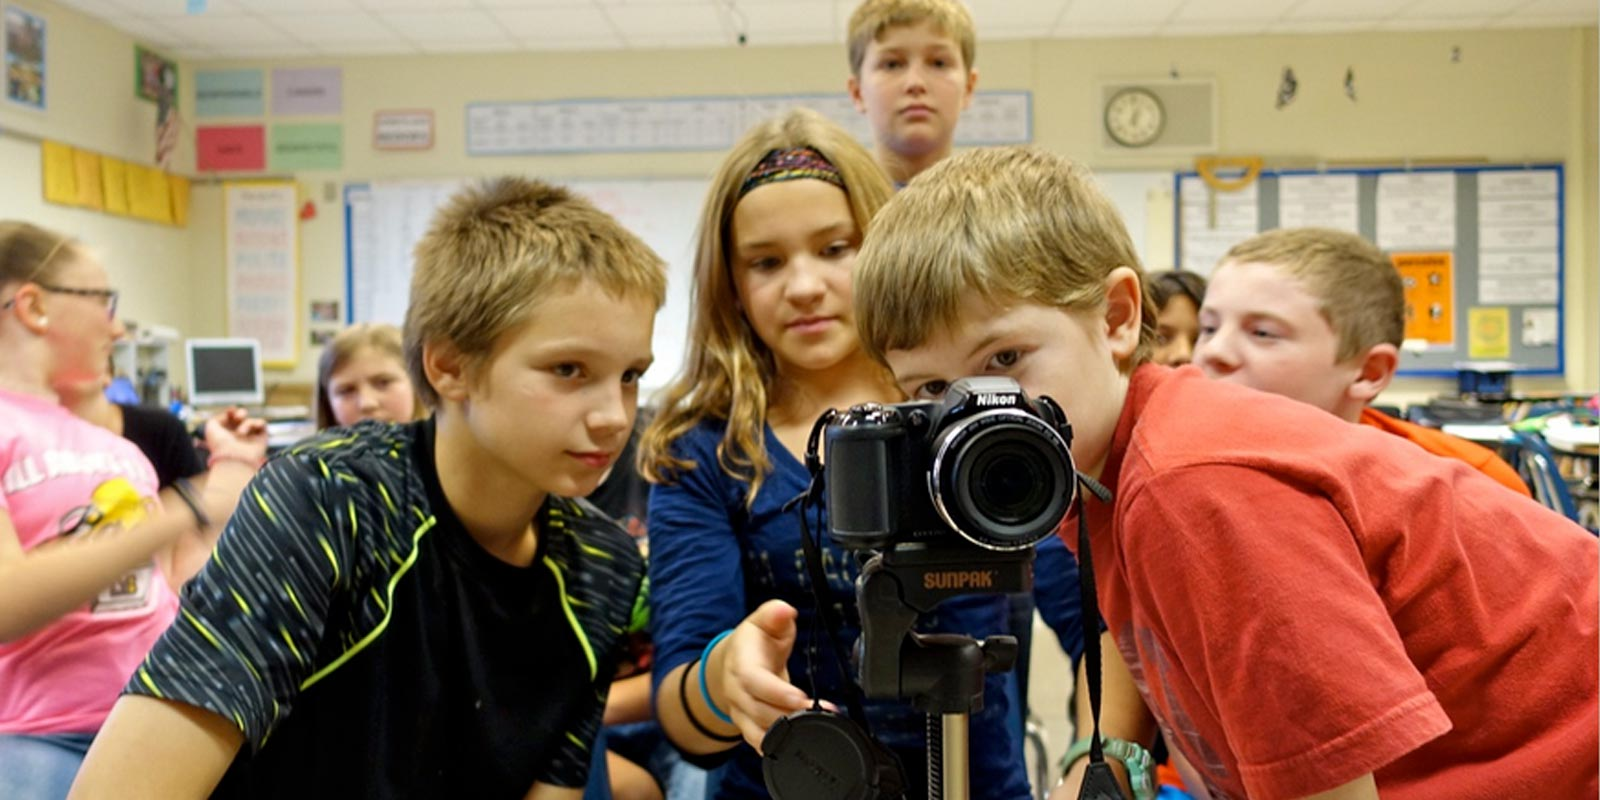 Kids behind a camera lens